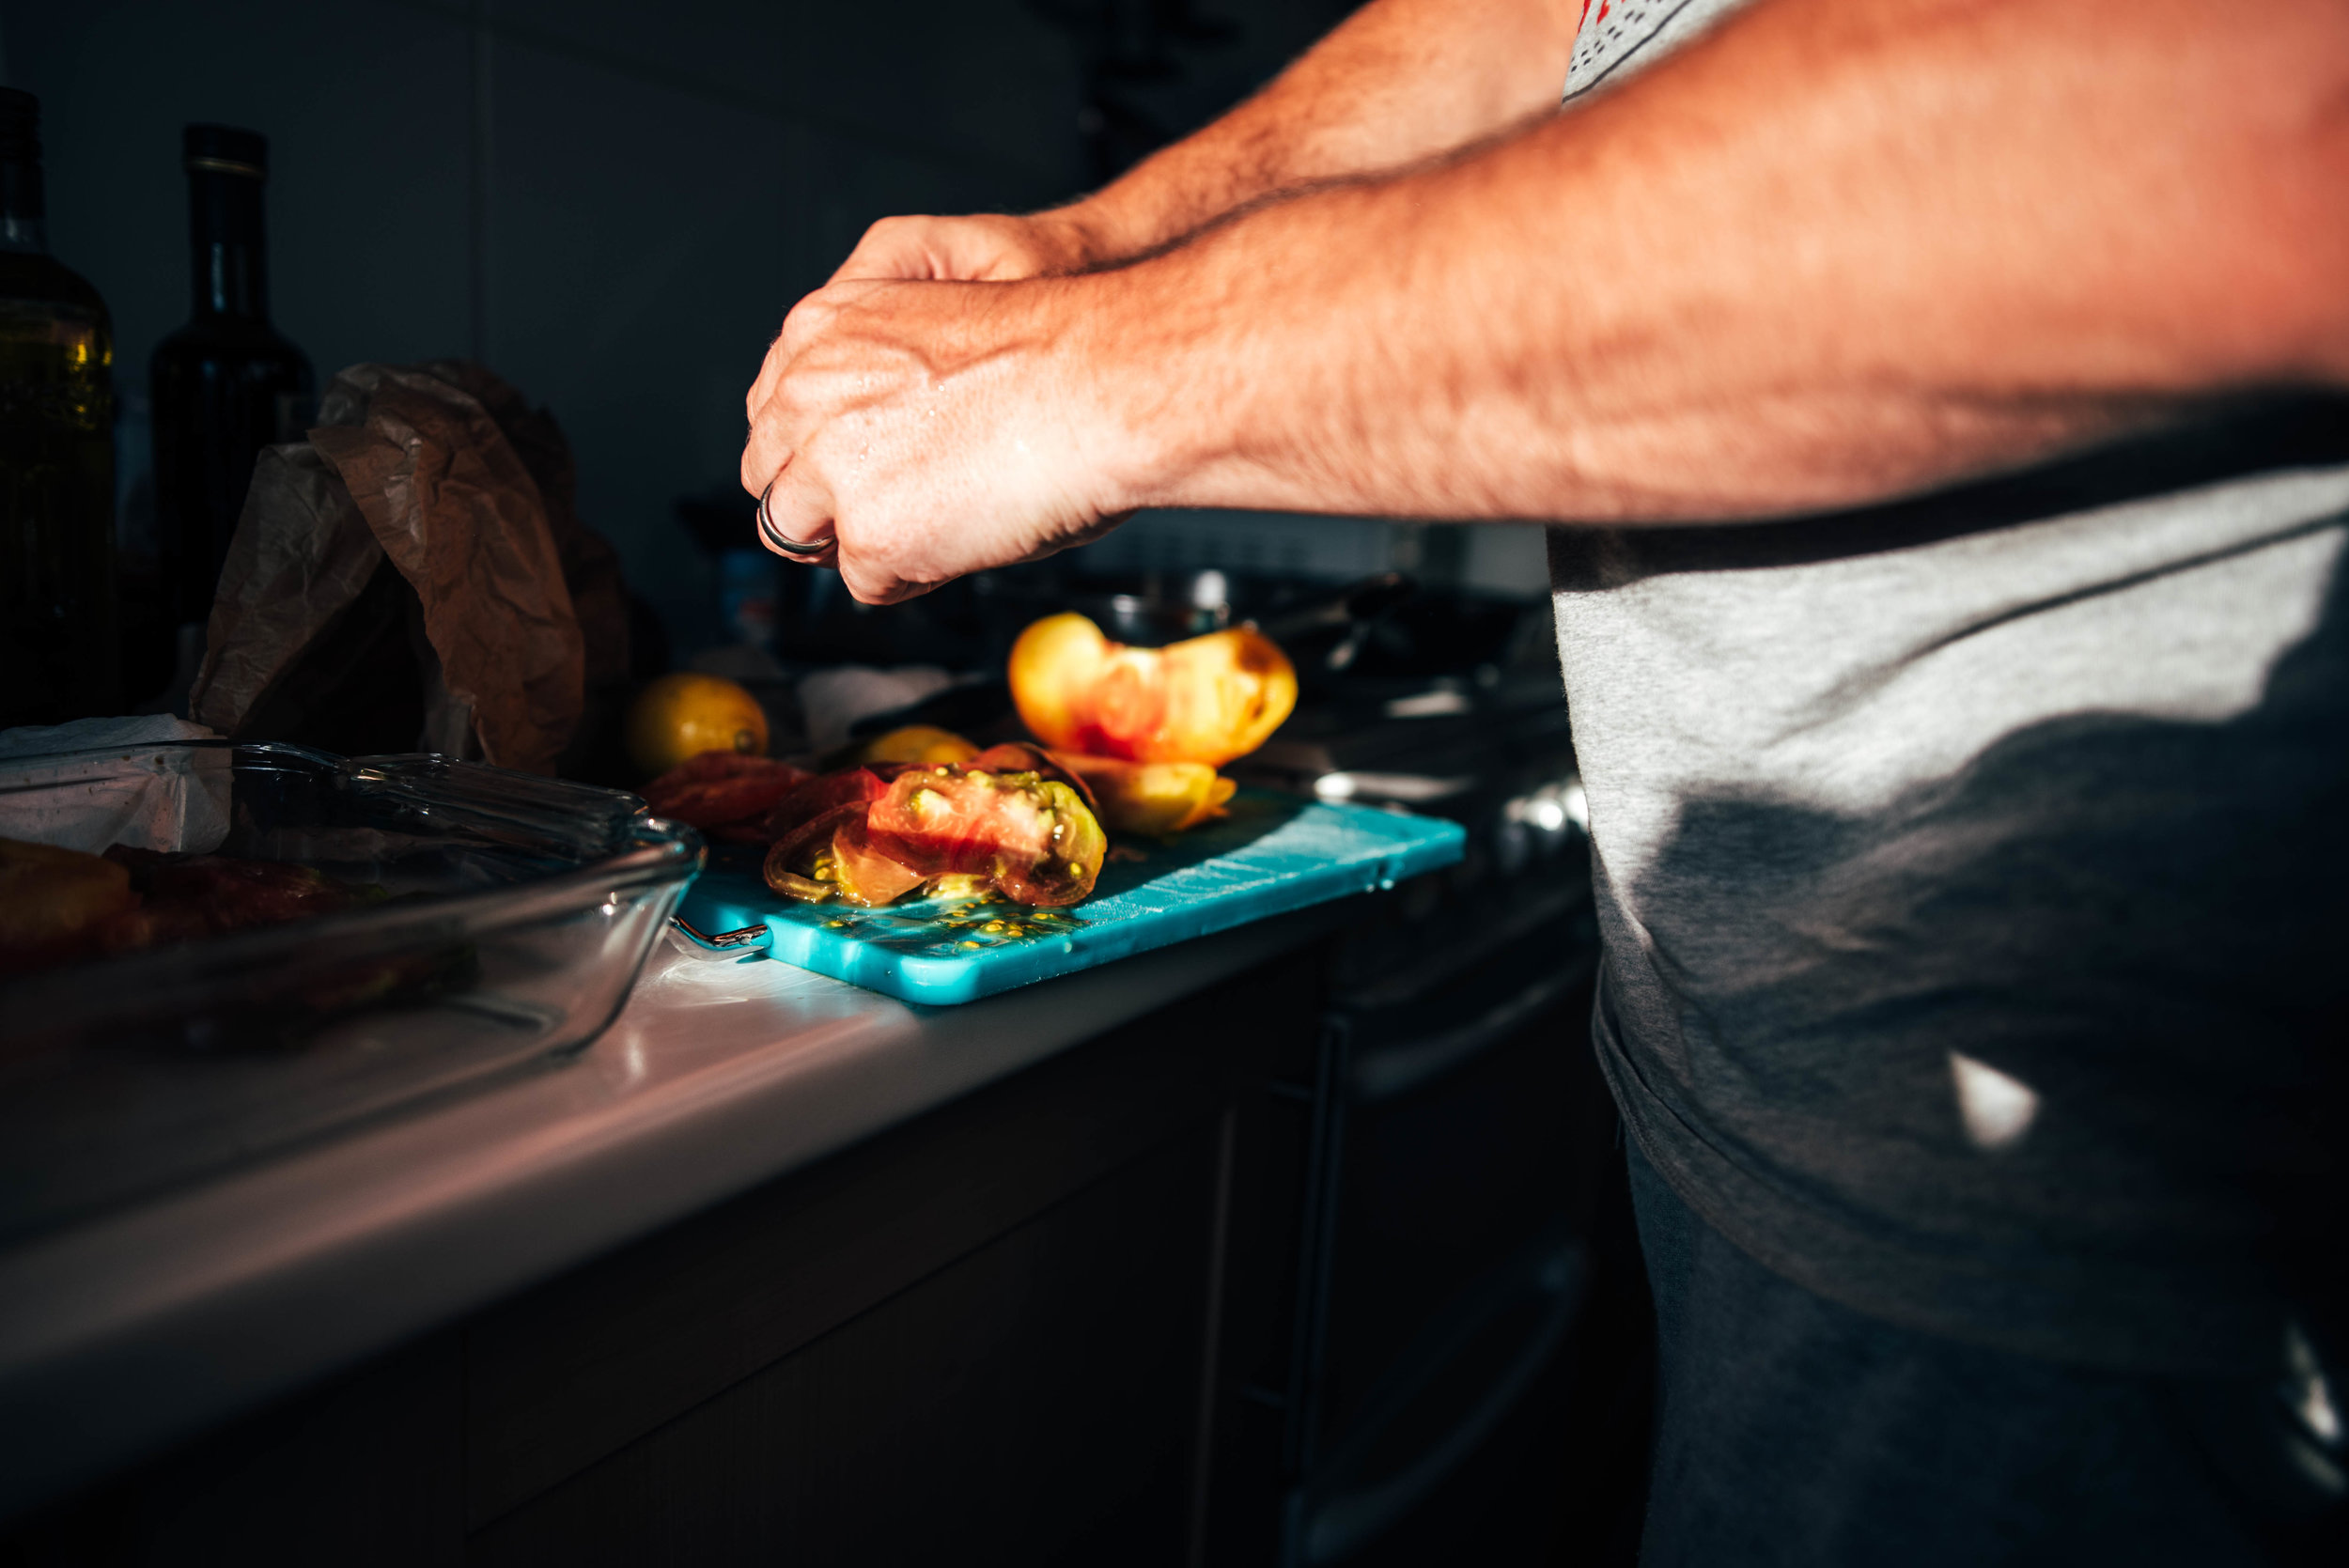 Man prepares dinner in sun drenched kitchen Essex UK Documentary Photographer